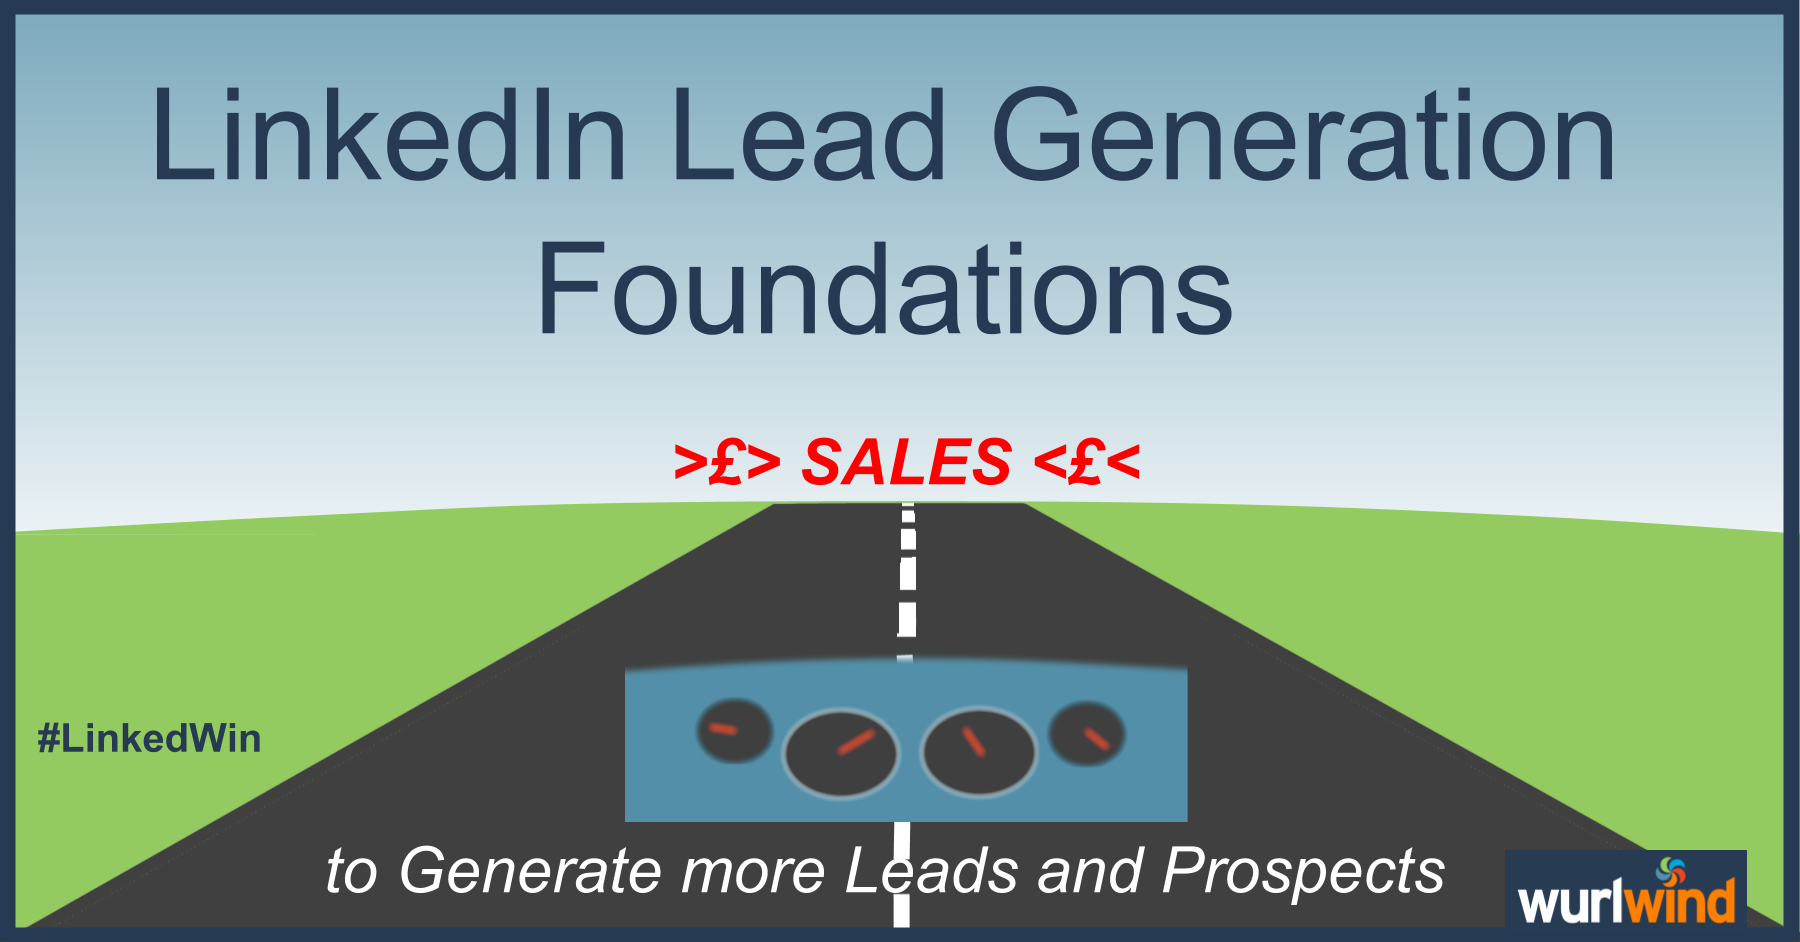 LinkedIn Lead Generation Foundations Image Mark Stonham Wurlwind